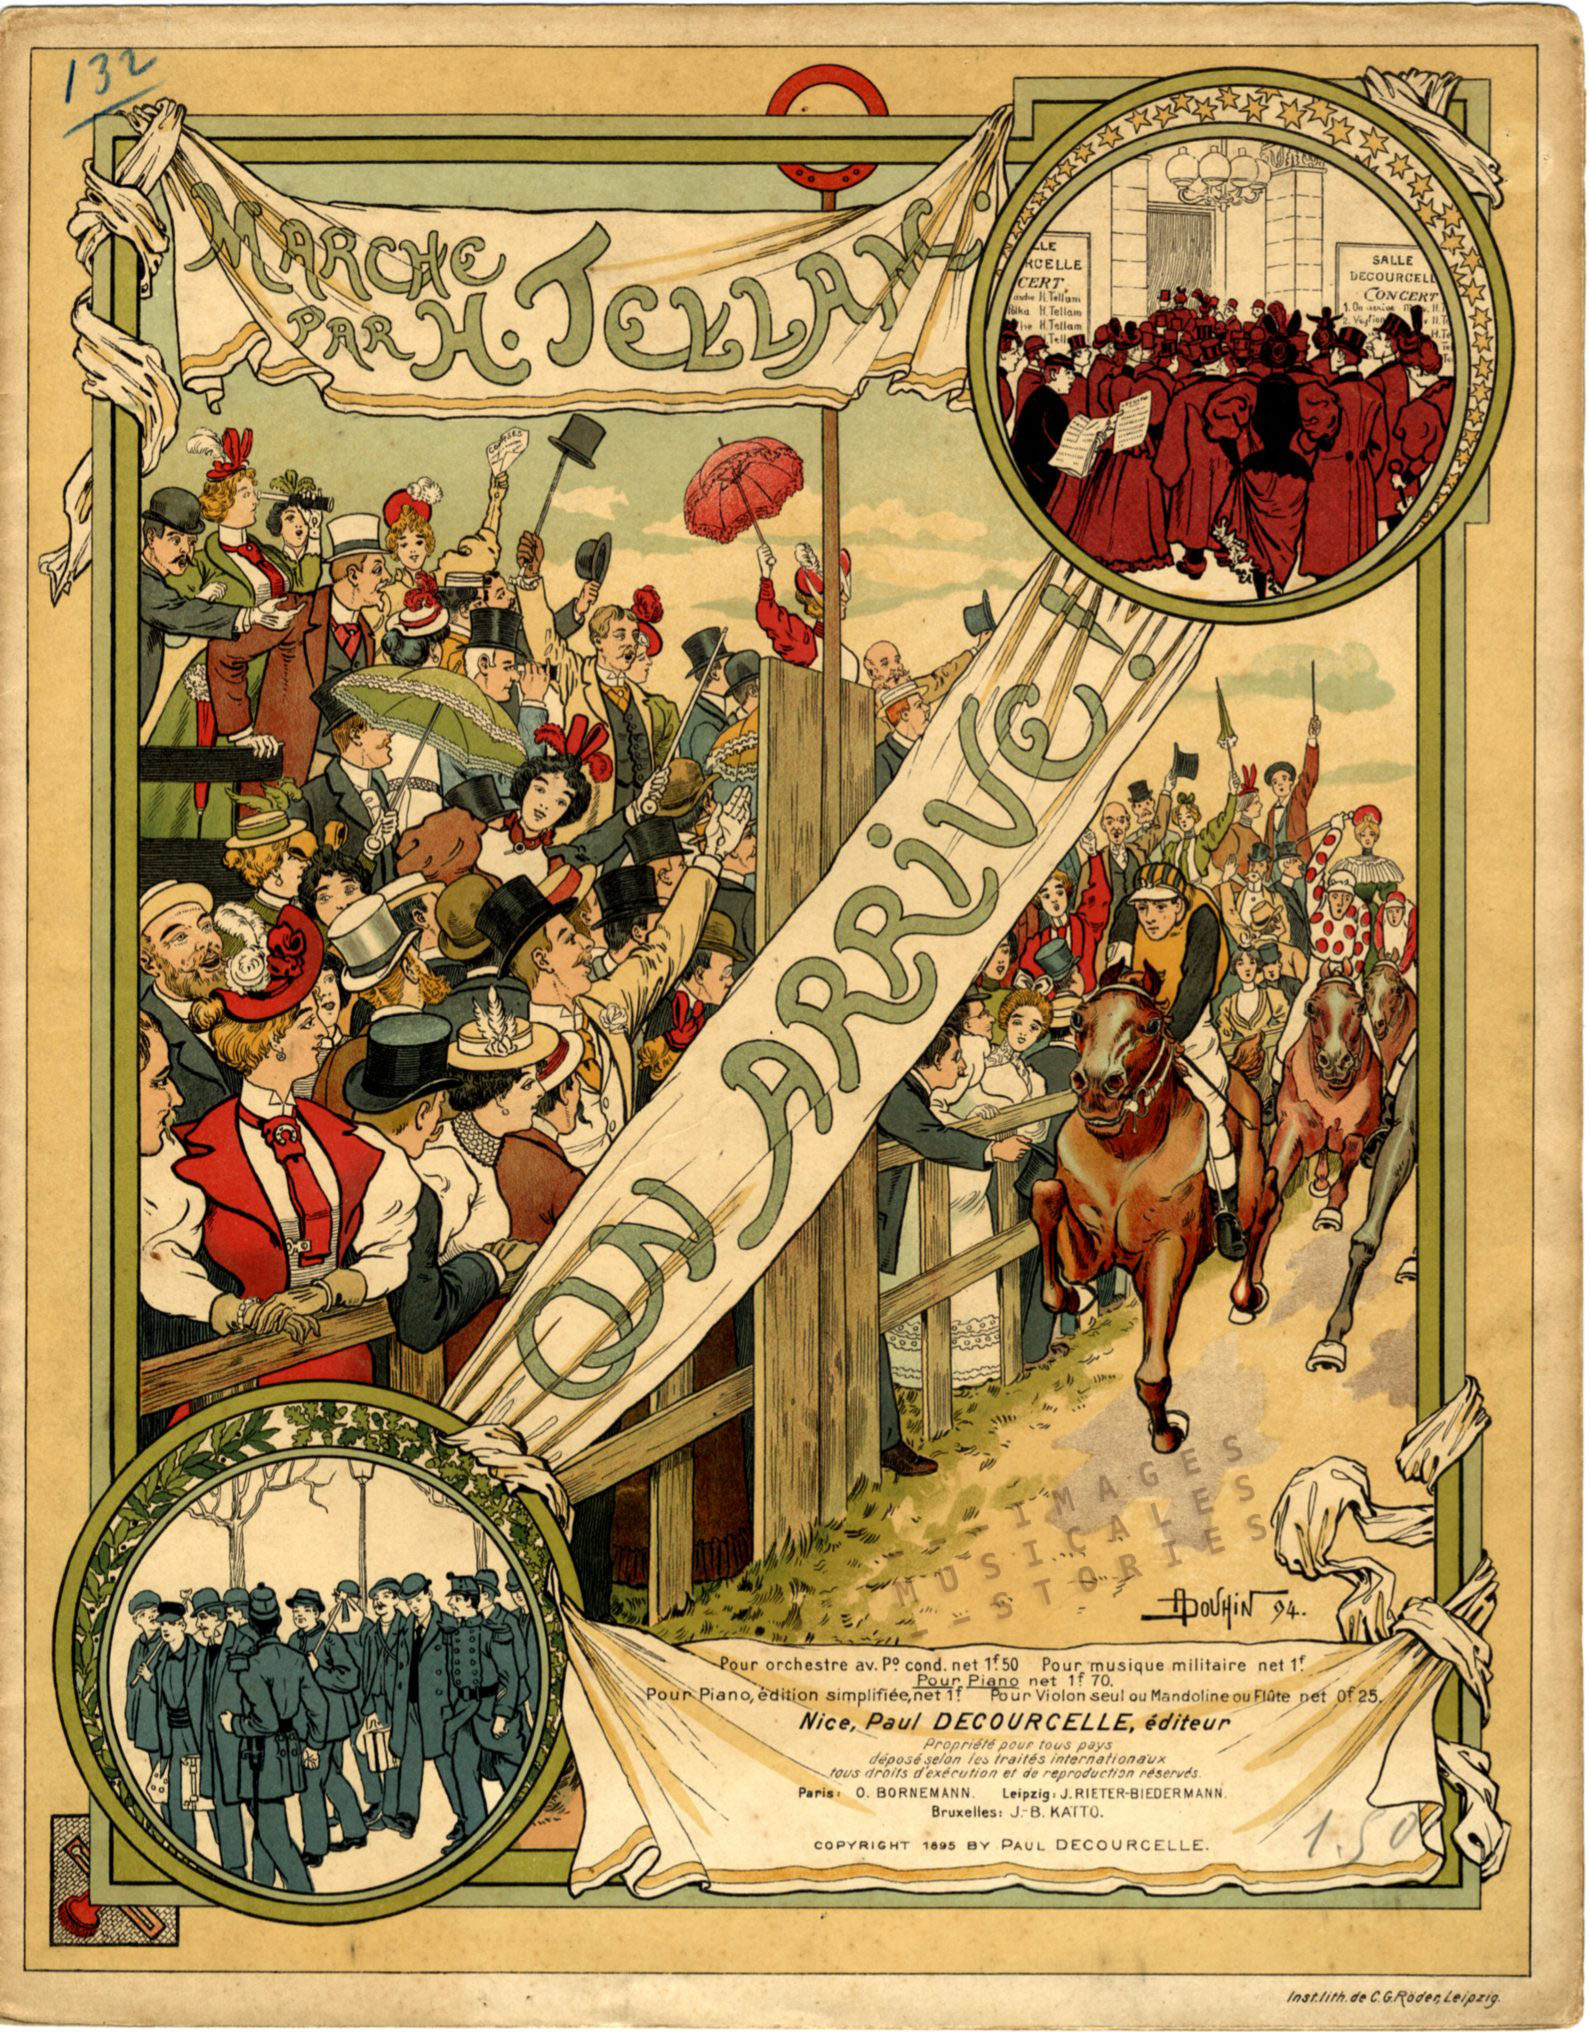 'On arrive' by H. Tellam (1895). Sheet music illustrated by André Douhin.